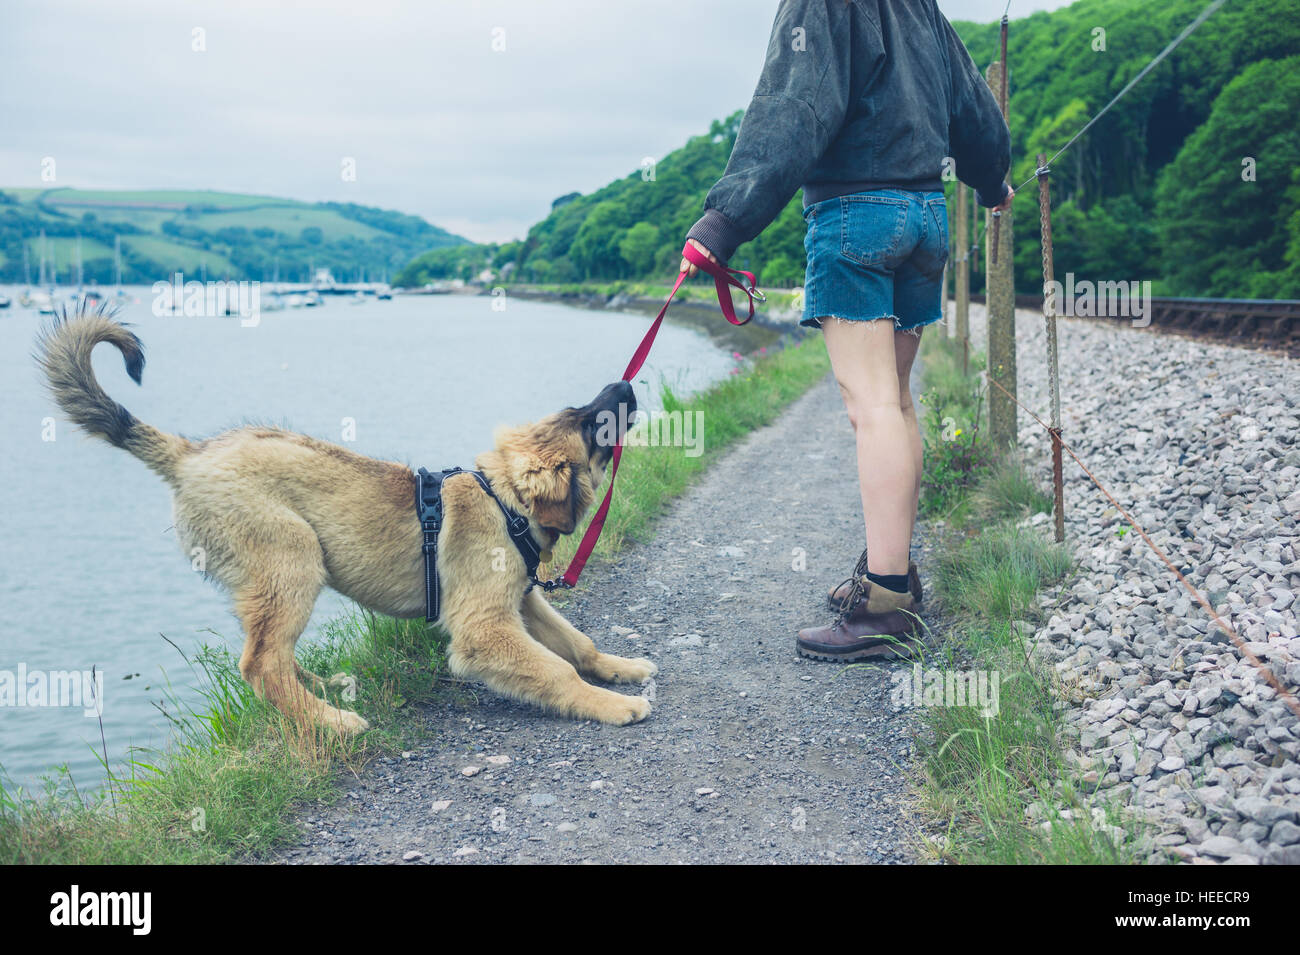 A naughty dog is pulling on his leash and almost falling into a lake - Stock Image